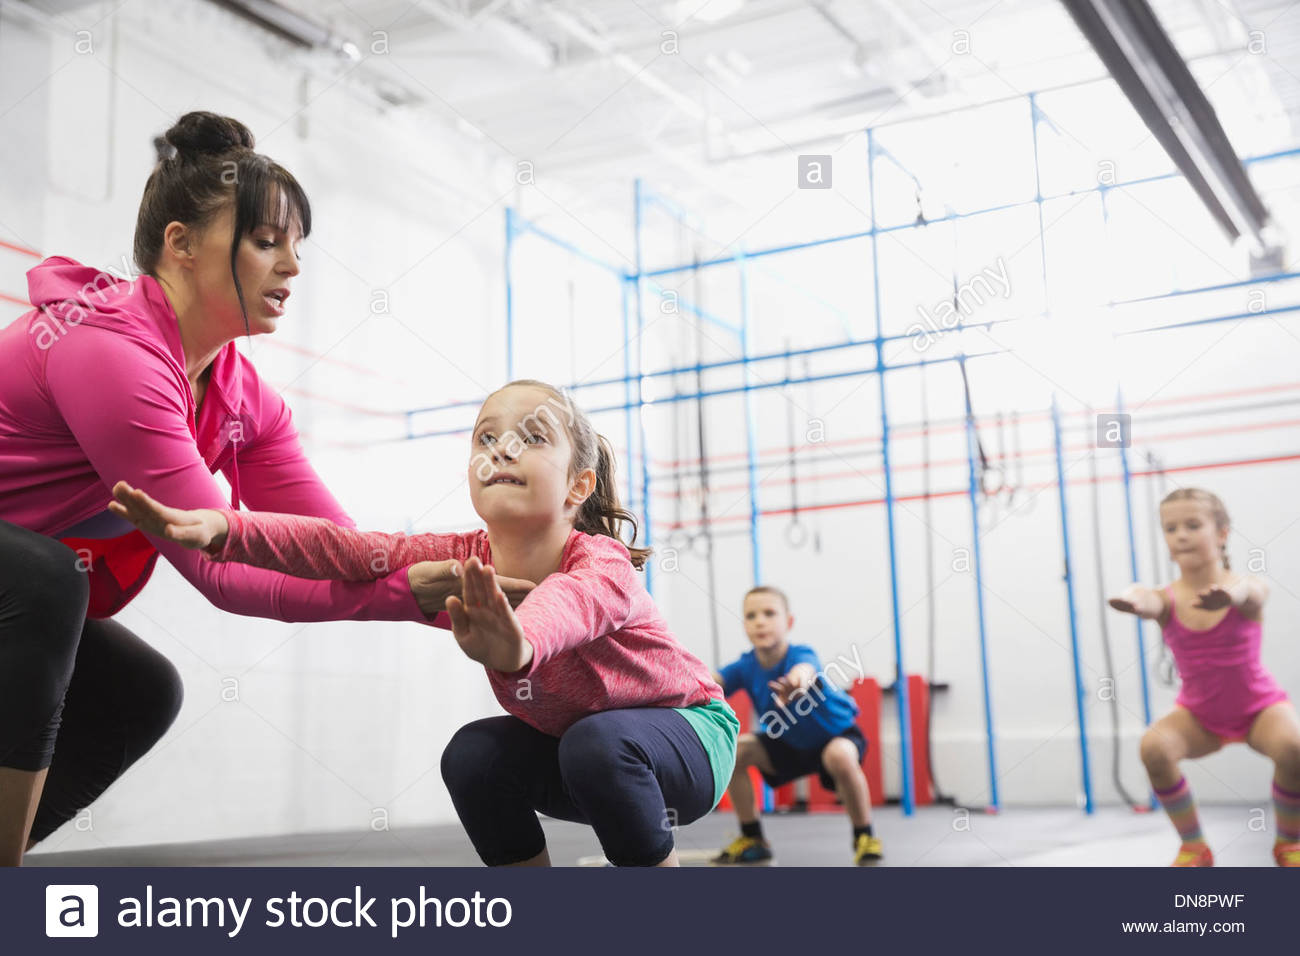 Coach assisting girl with squats in Crossfit class - Stock Image